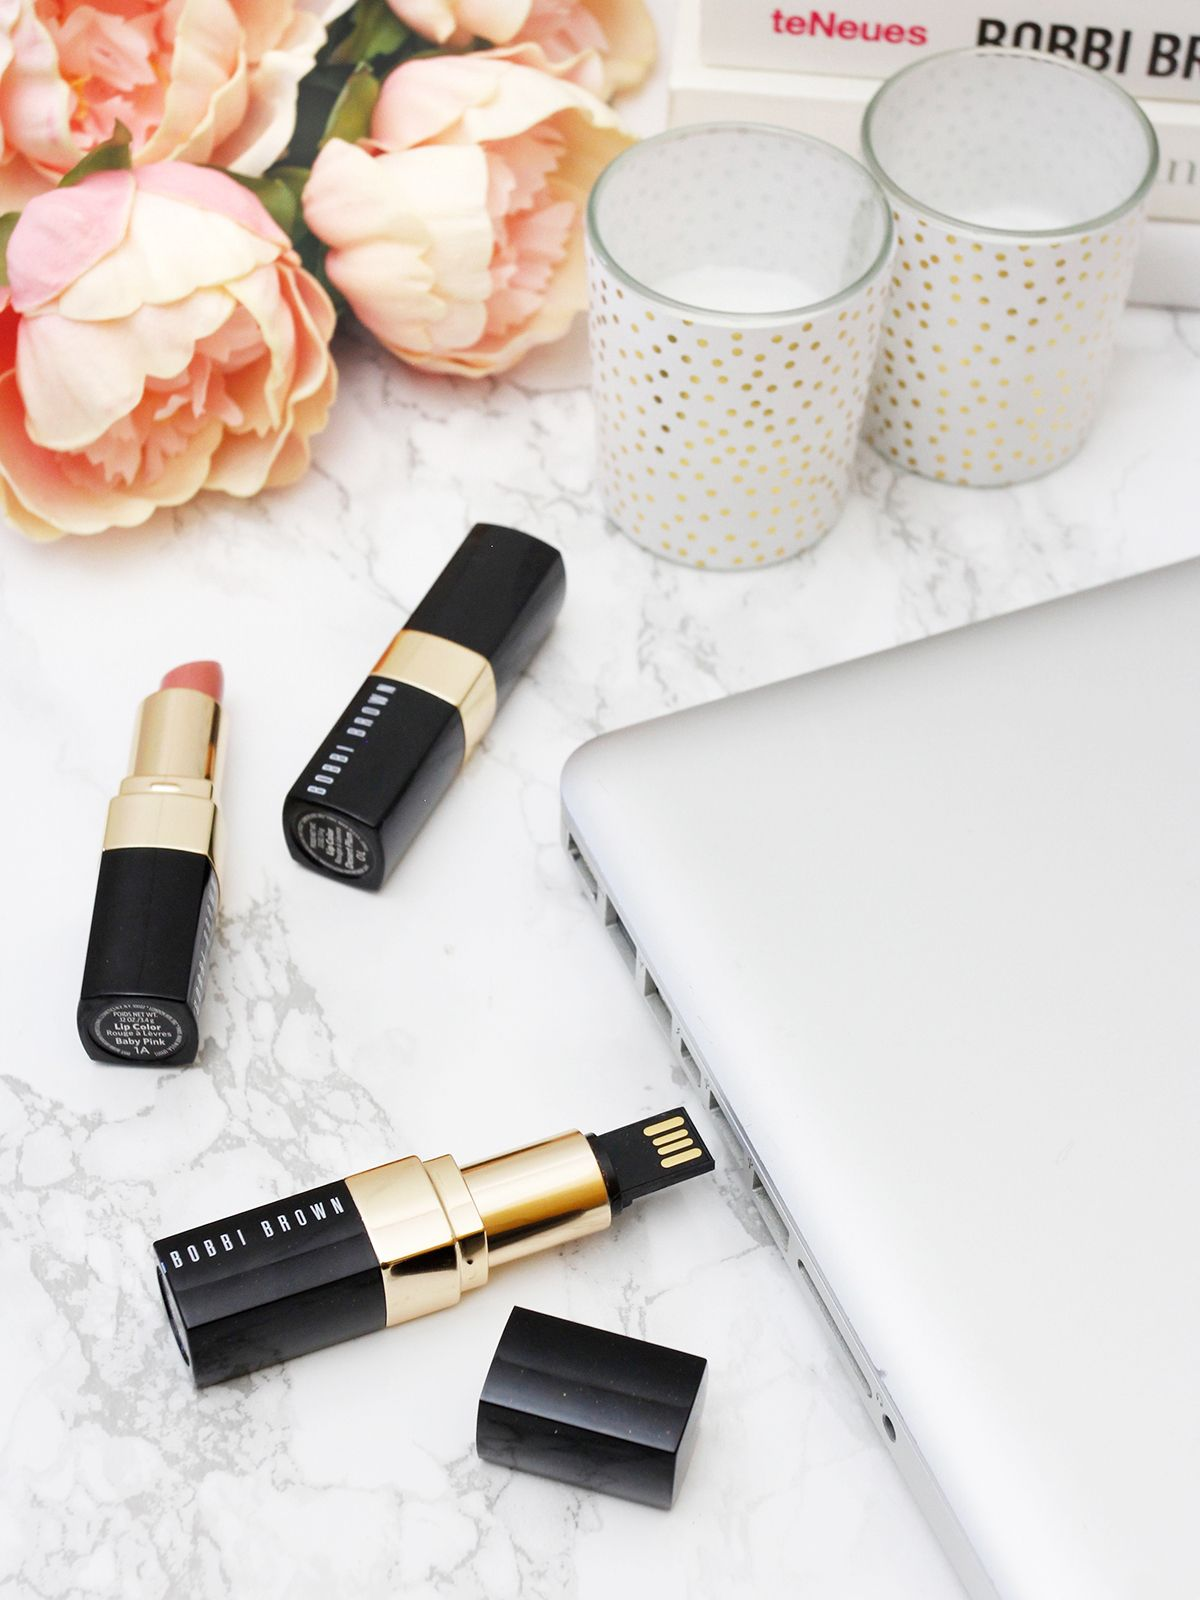 Upcycling Diy Lippenstift Memory Stick Mit Bobbi Brown